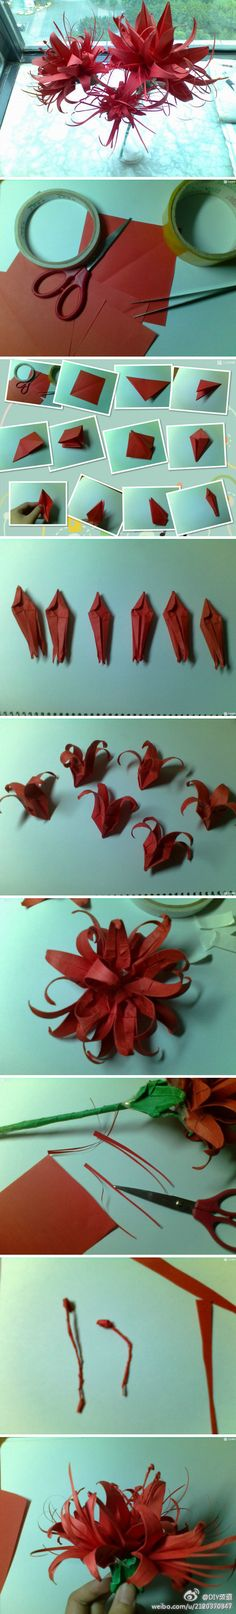 Flowers - Origami